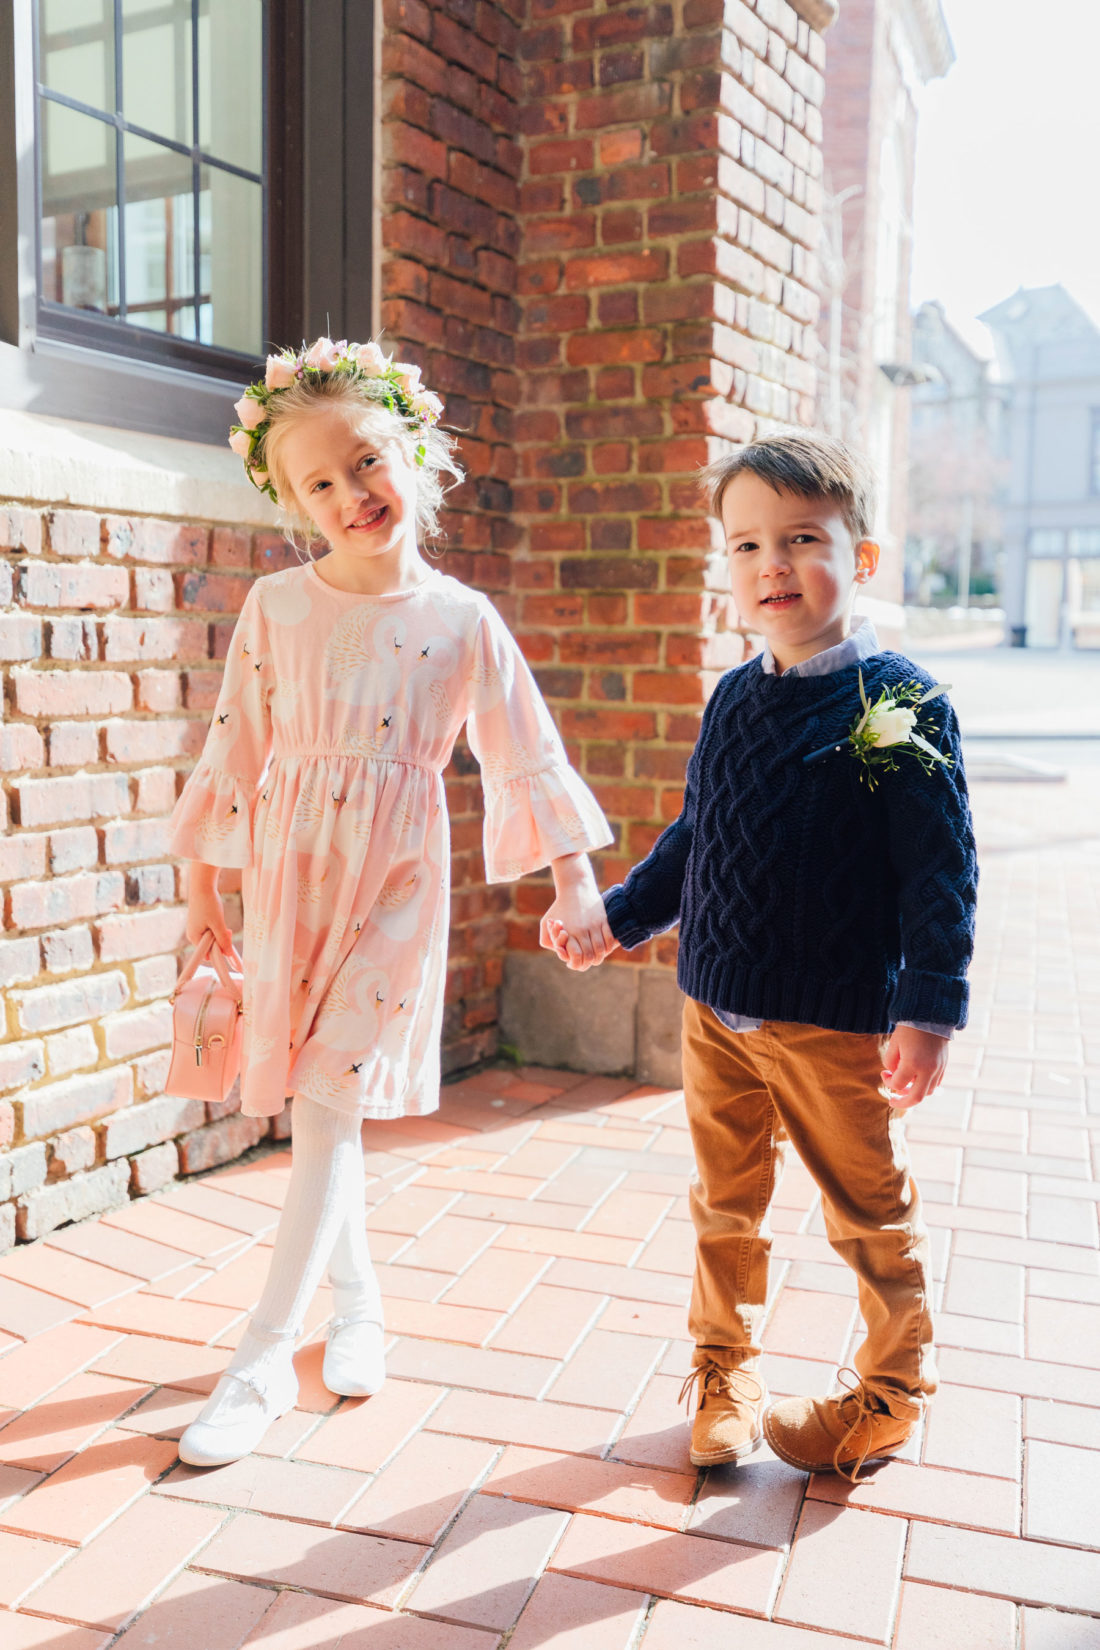 Blogger Eva Amurri's kids Marlowe and Major at her Baby Sprinkle